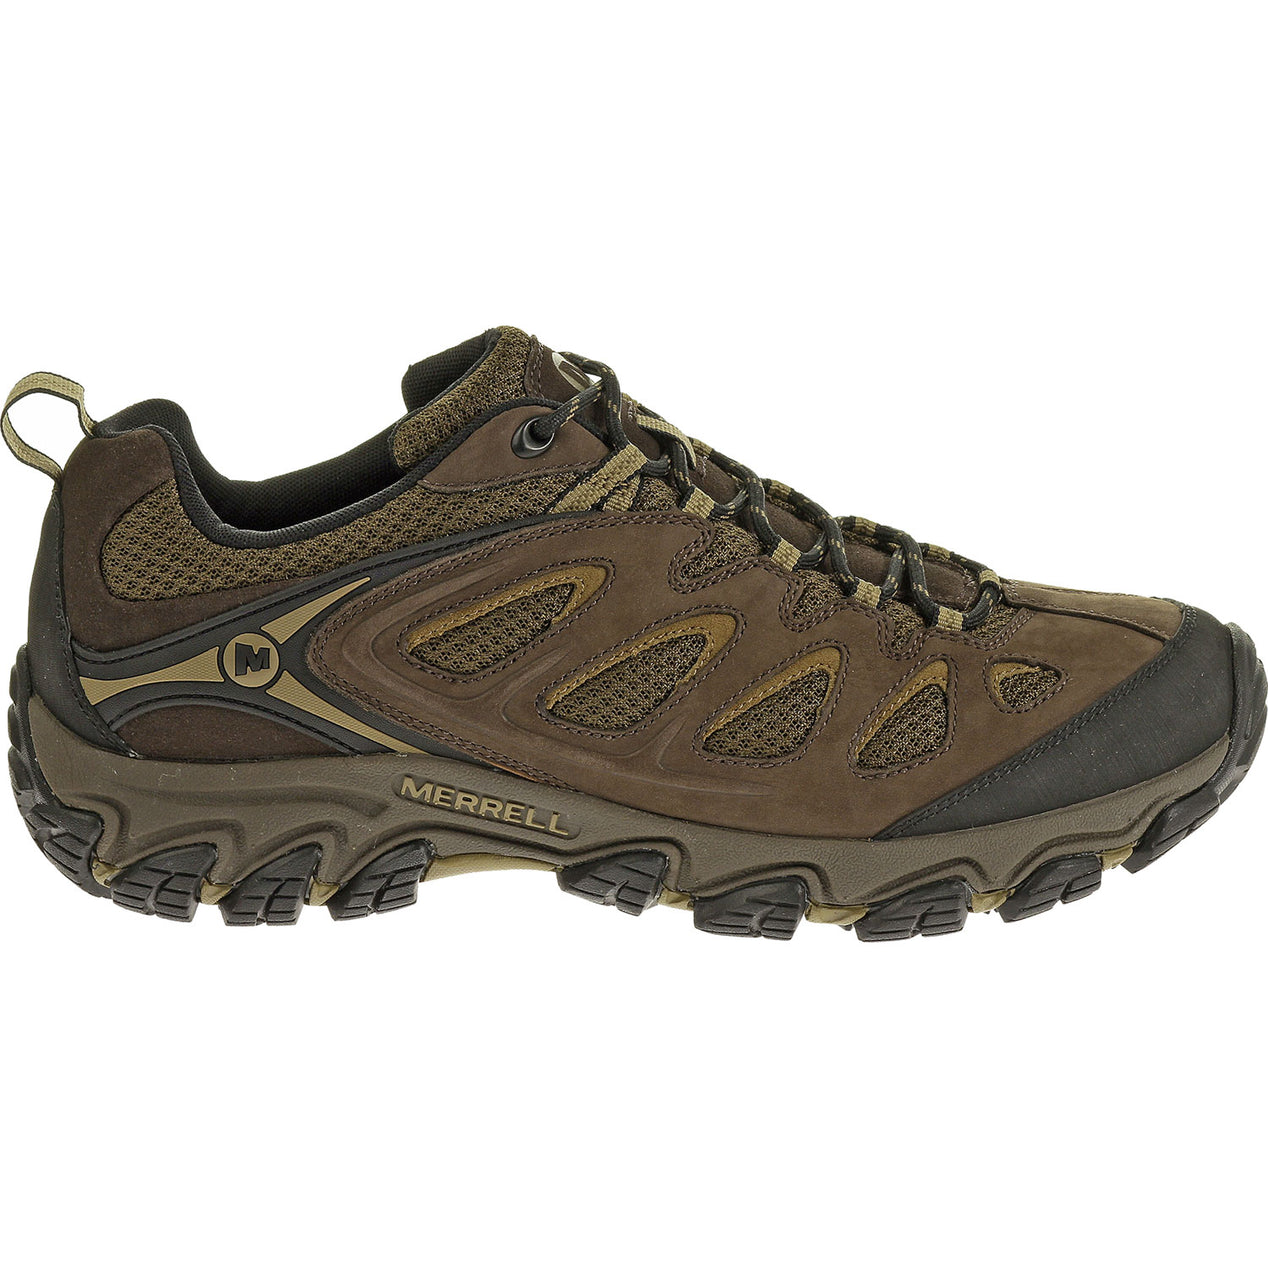 buy good outstanding features hoard as a rare commodity Merrell Men's Pulsate Ventilator